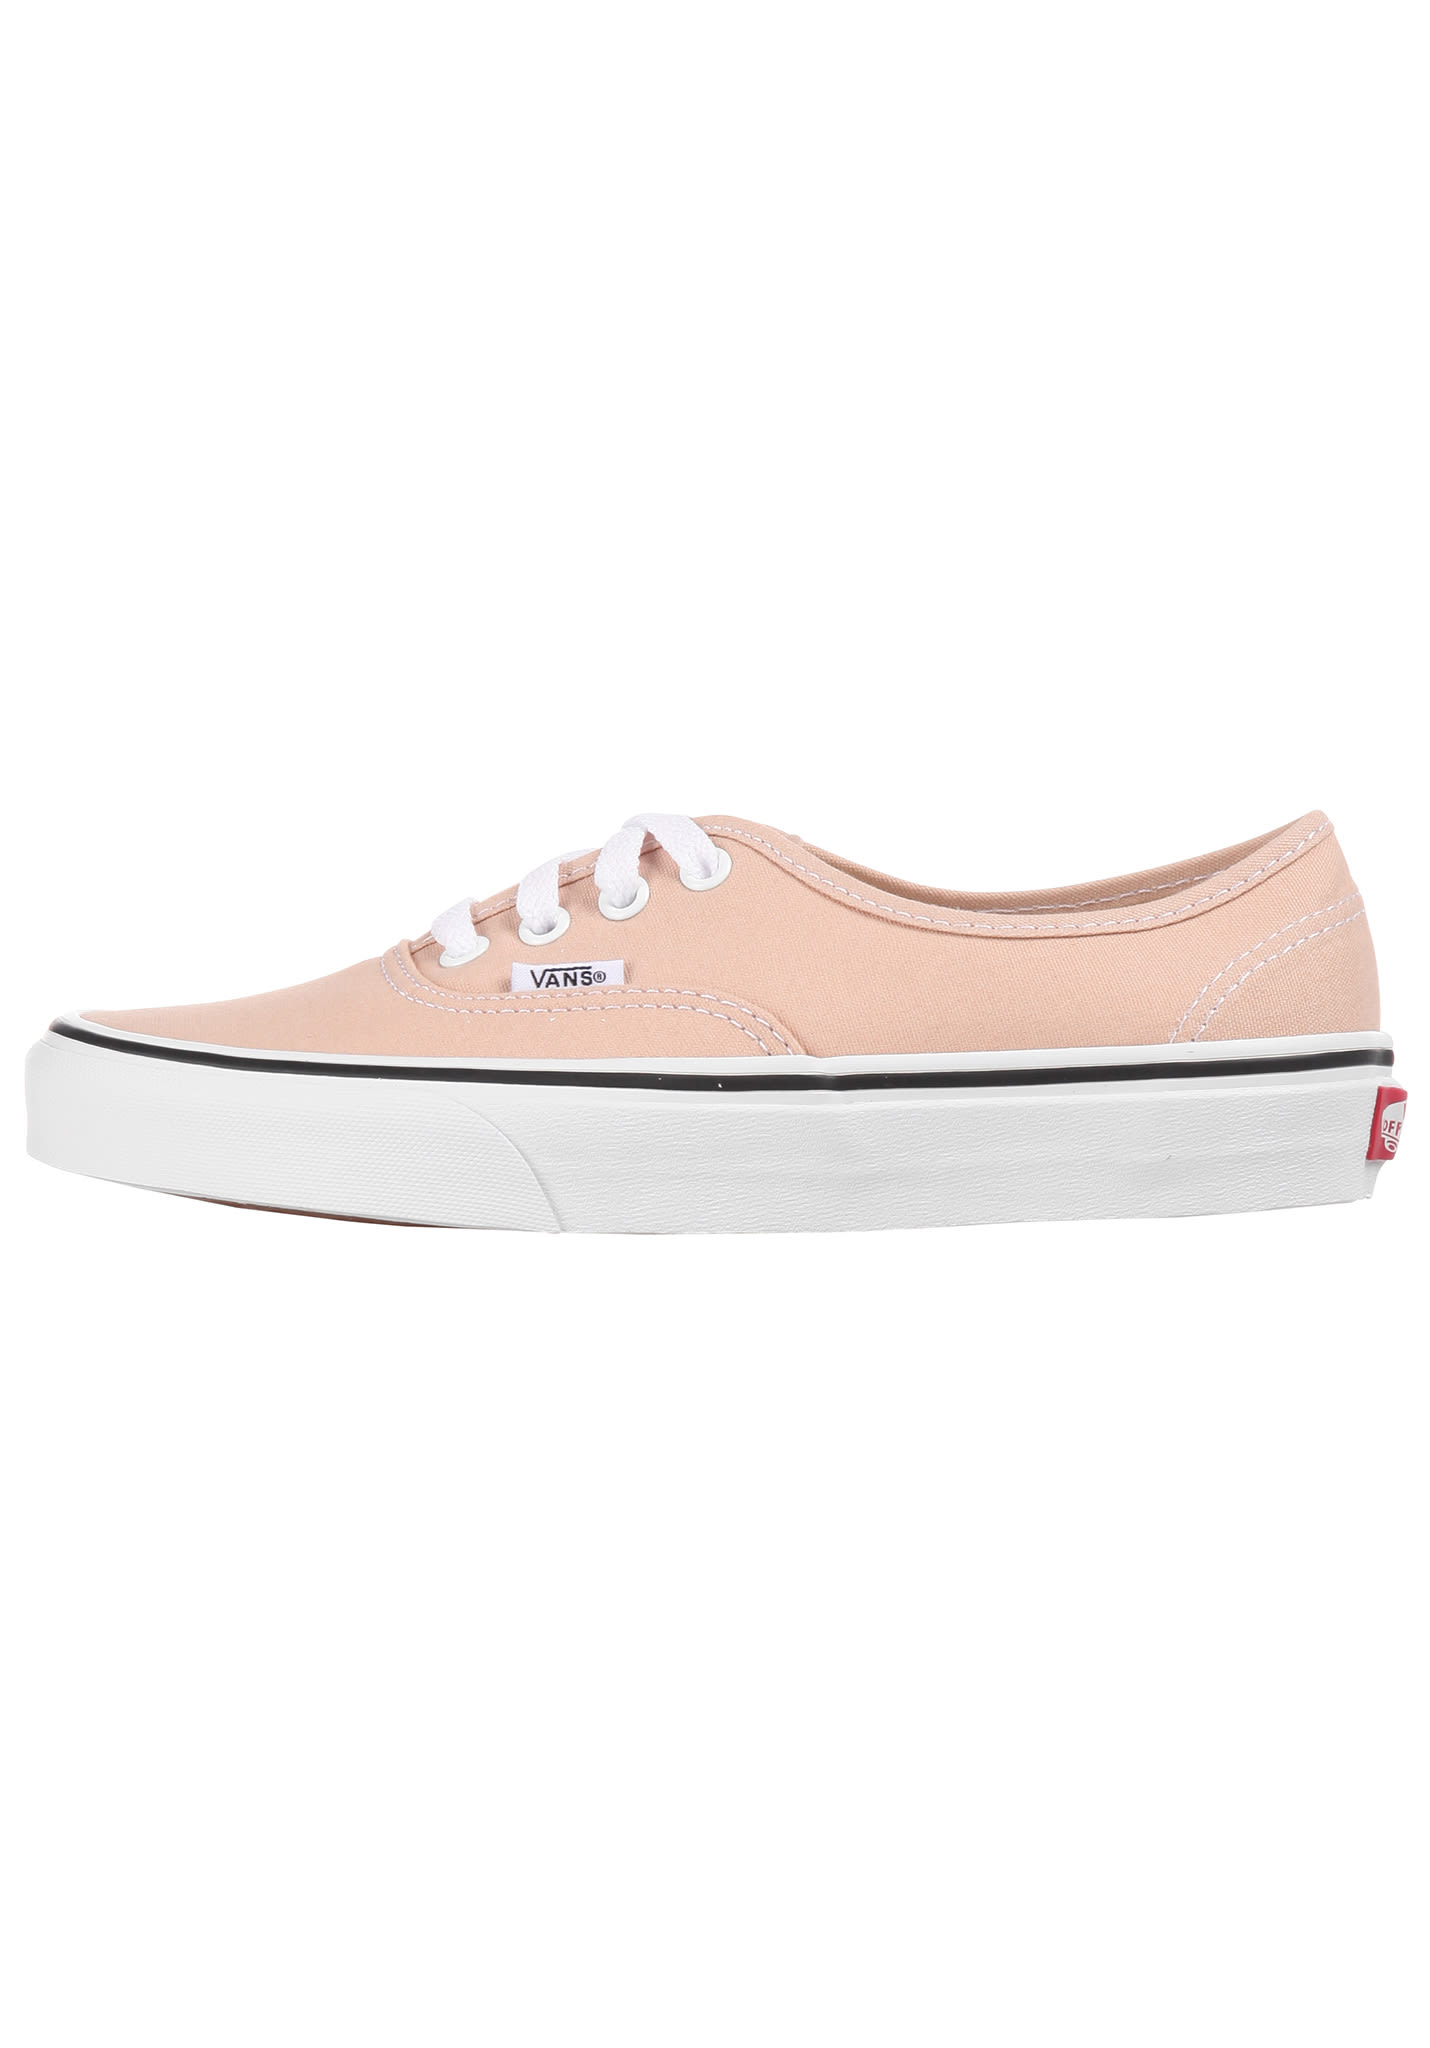 VANS Authentic Sneaker für Damen Pink